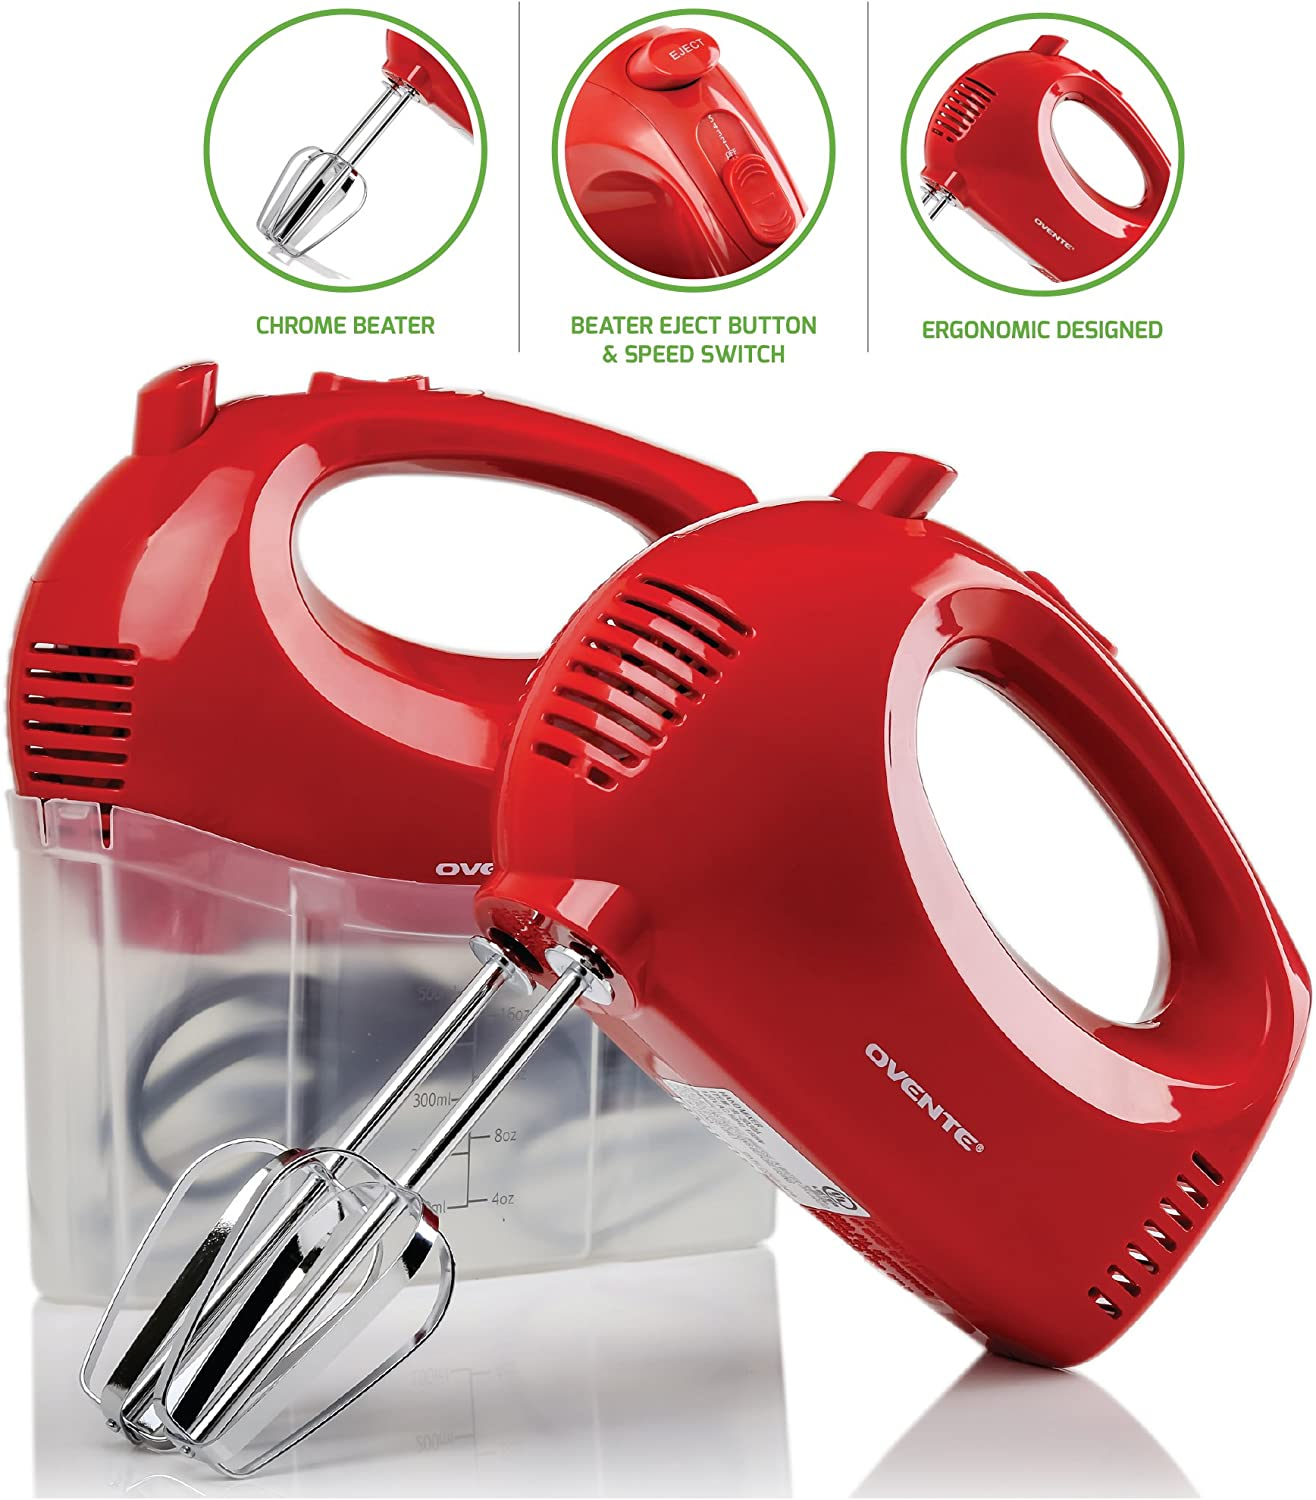 Ovente Electric Hand Mixer 5 Speed Ultra Mixing with Snap Storage Case 2 Stainless Steel Beater Attachments, Compact Light Portable 150 Watt Powered Blender for Baking, Cake & Cooking